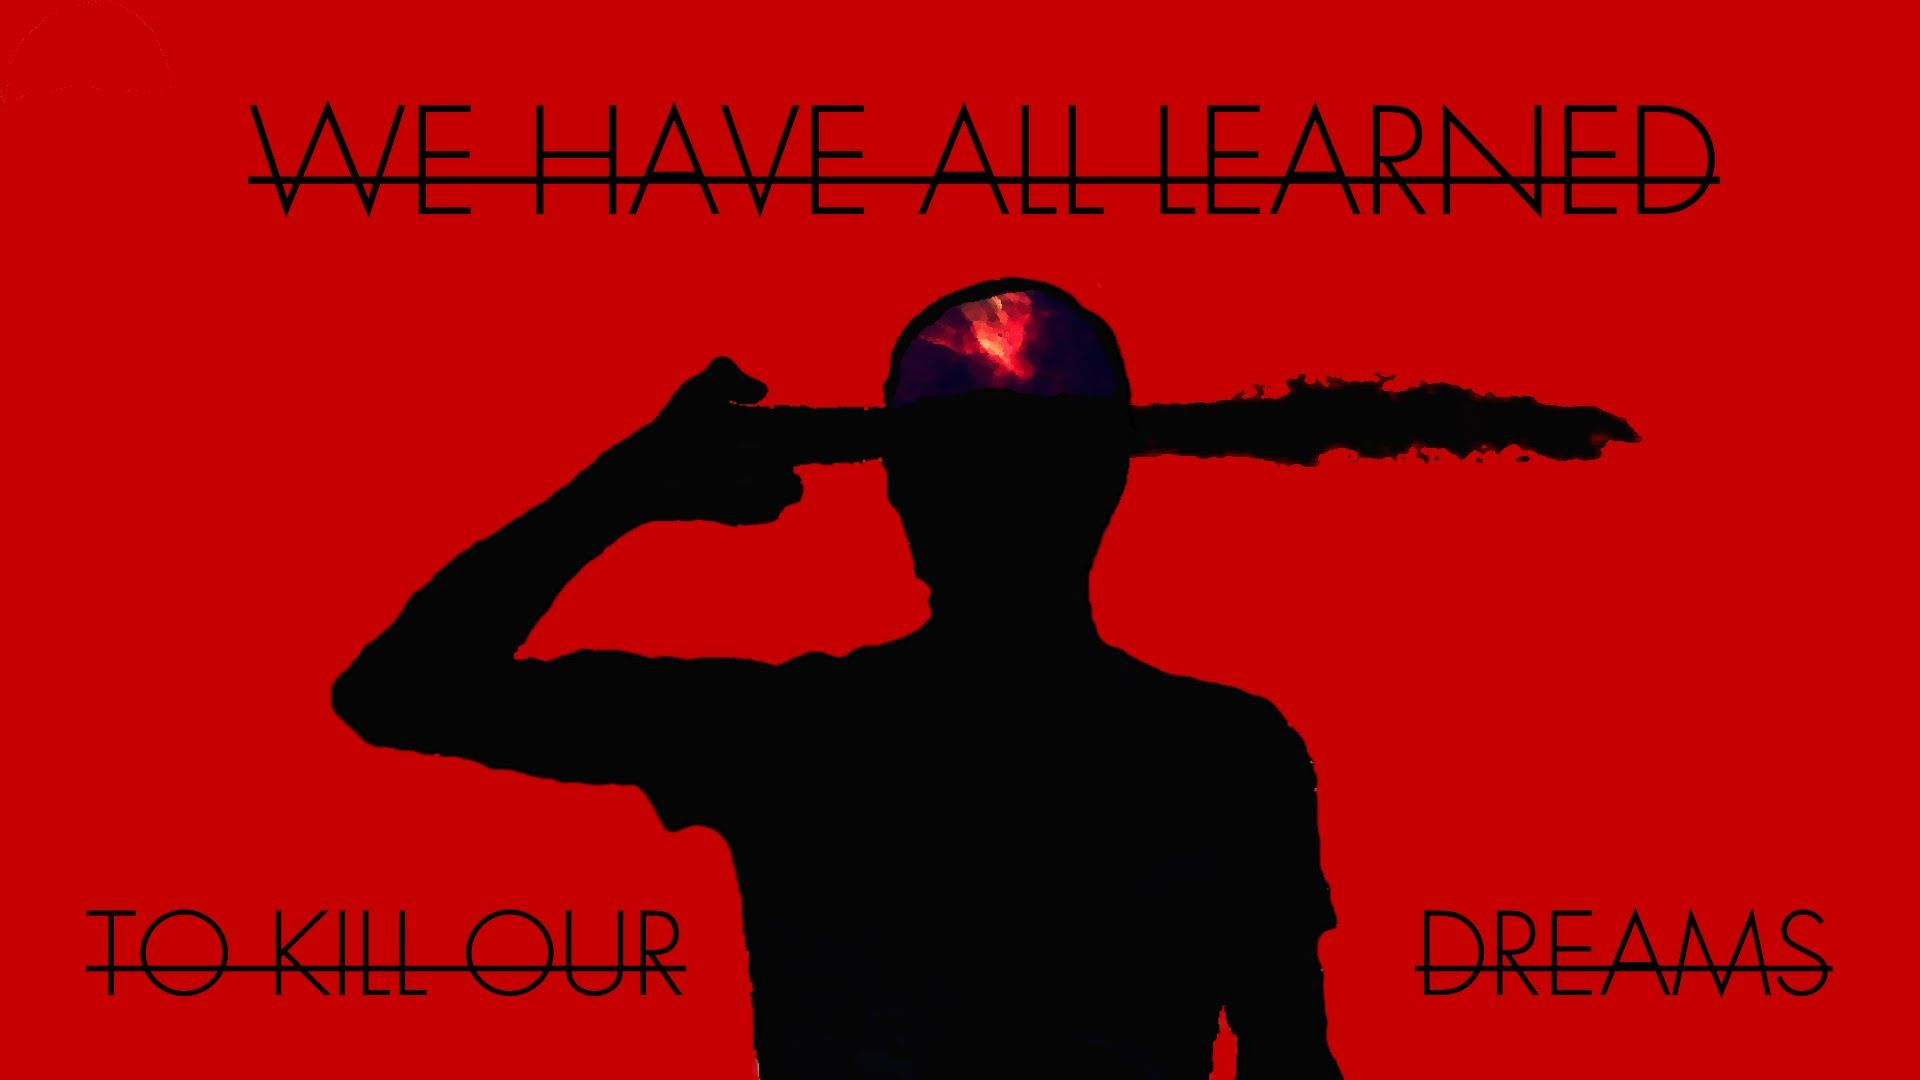 Twenty One Pilots Quot We Have All Learned To Kill Our Dreams